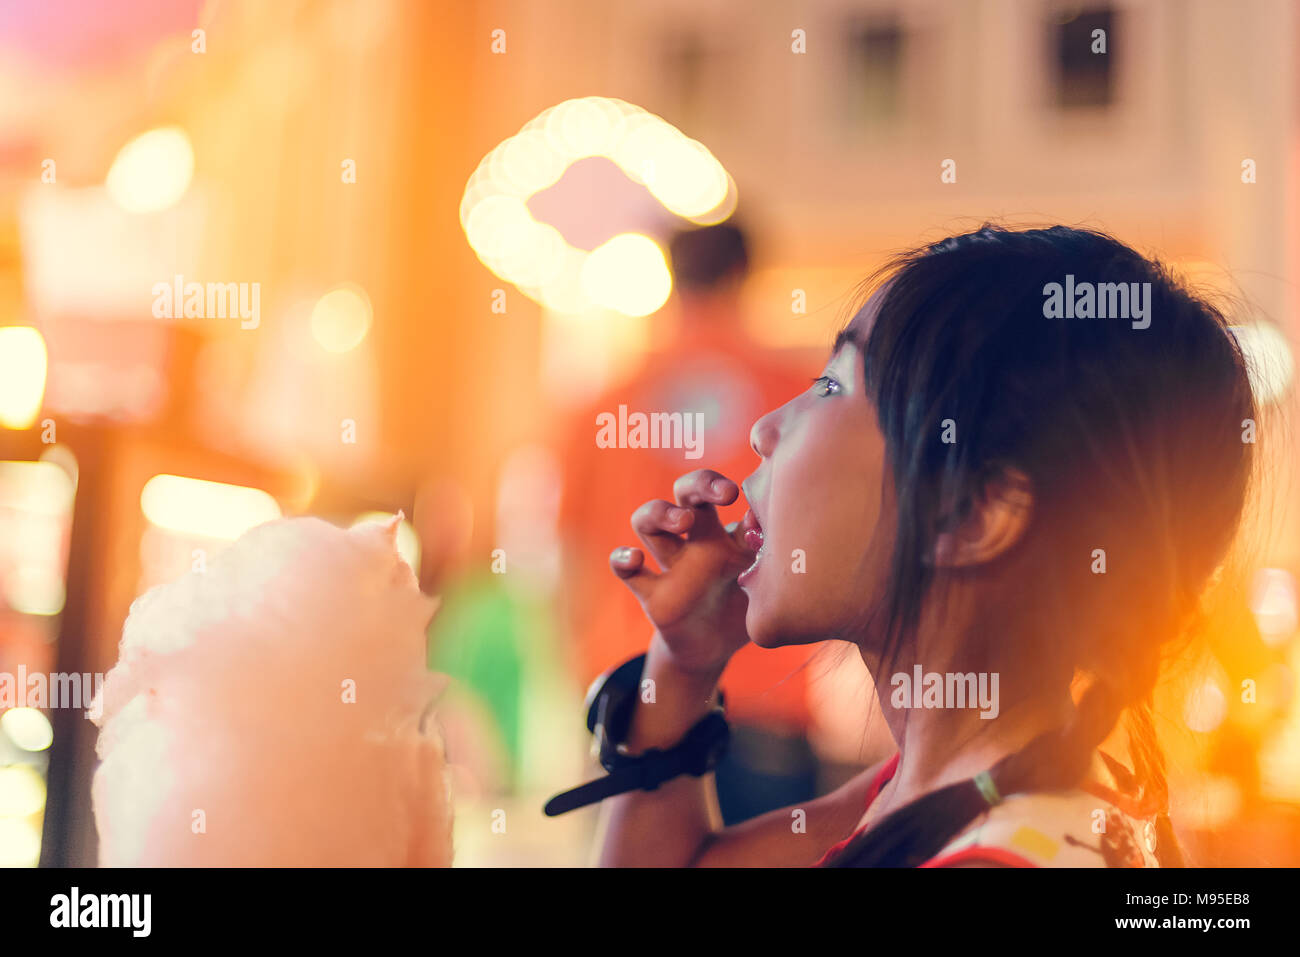 Girl Night Lights Cute Girl With White Cotton Candy And Night Light Stock Photo